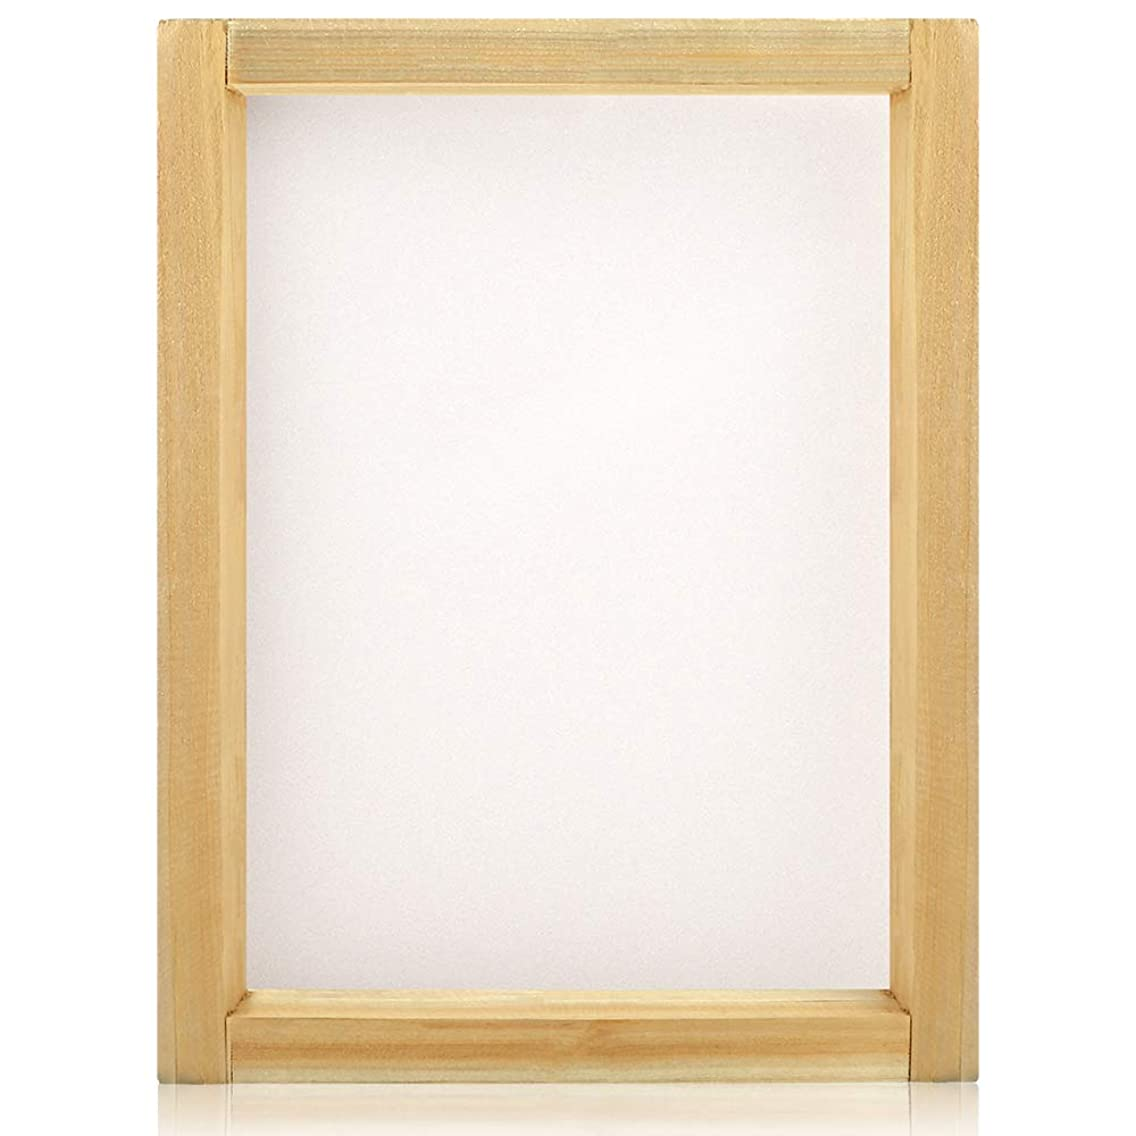 Caydo 1 Piece 10 x 14 Inch Wood Silk Screen Printing Frames with 110 White Mesh